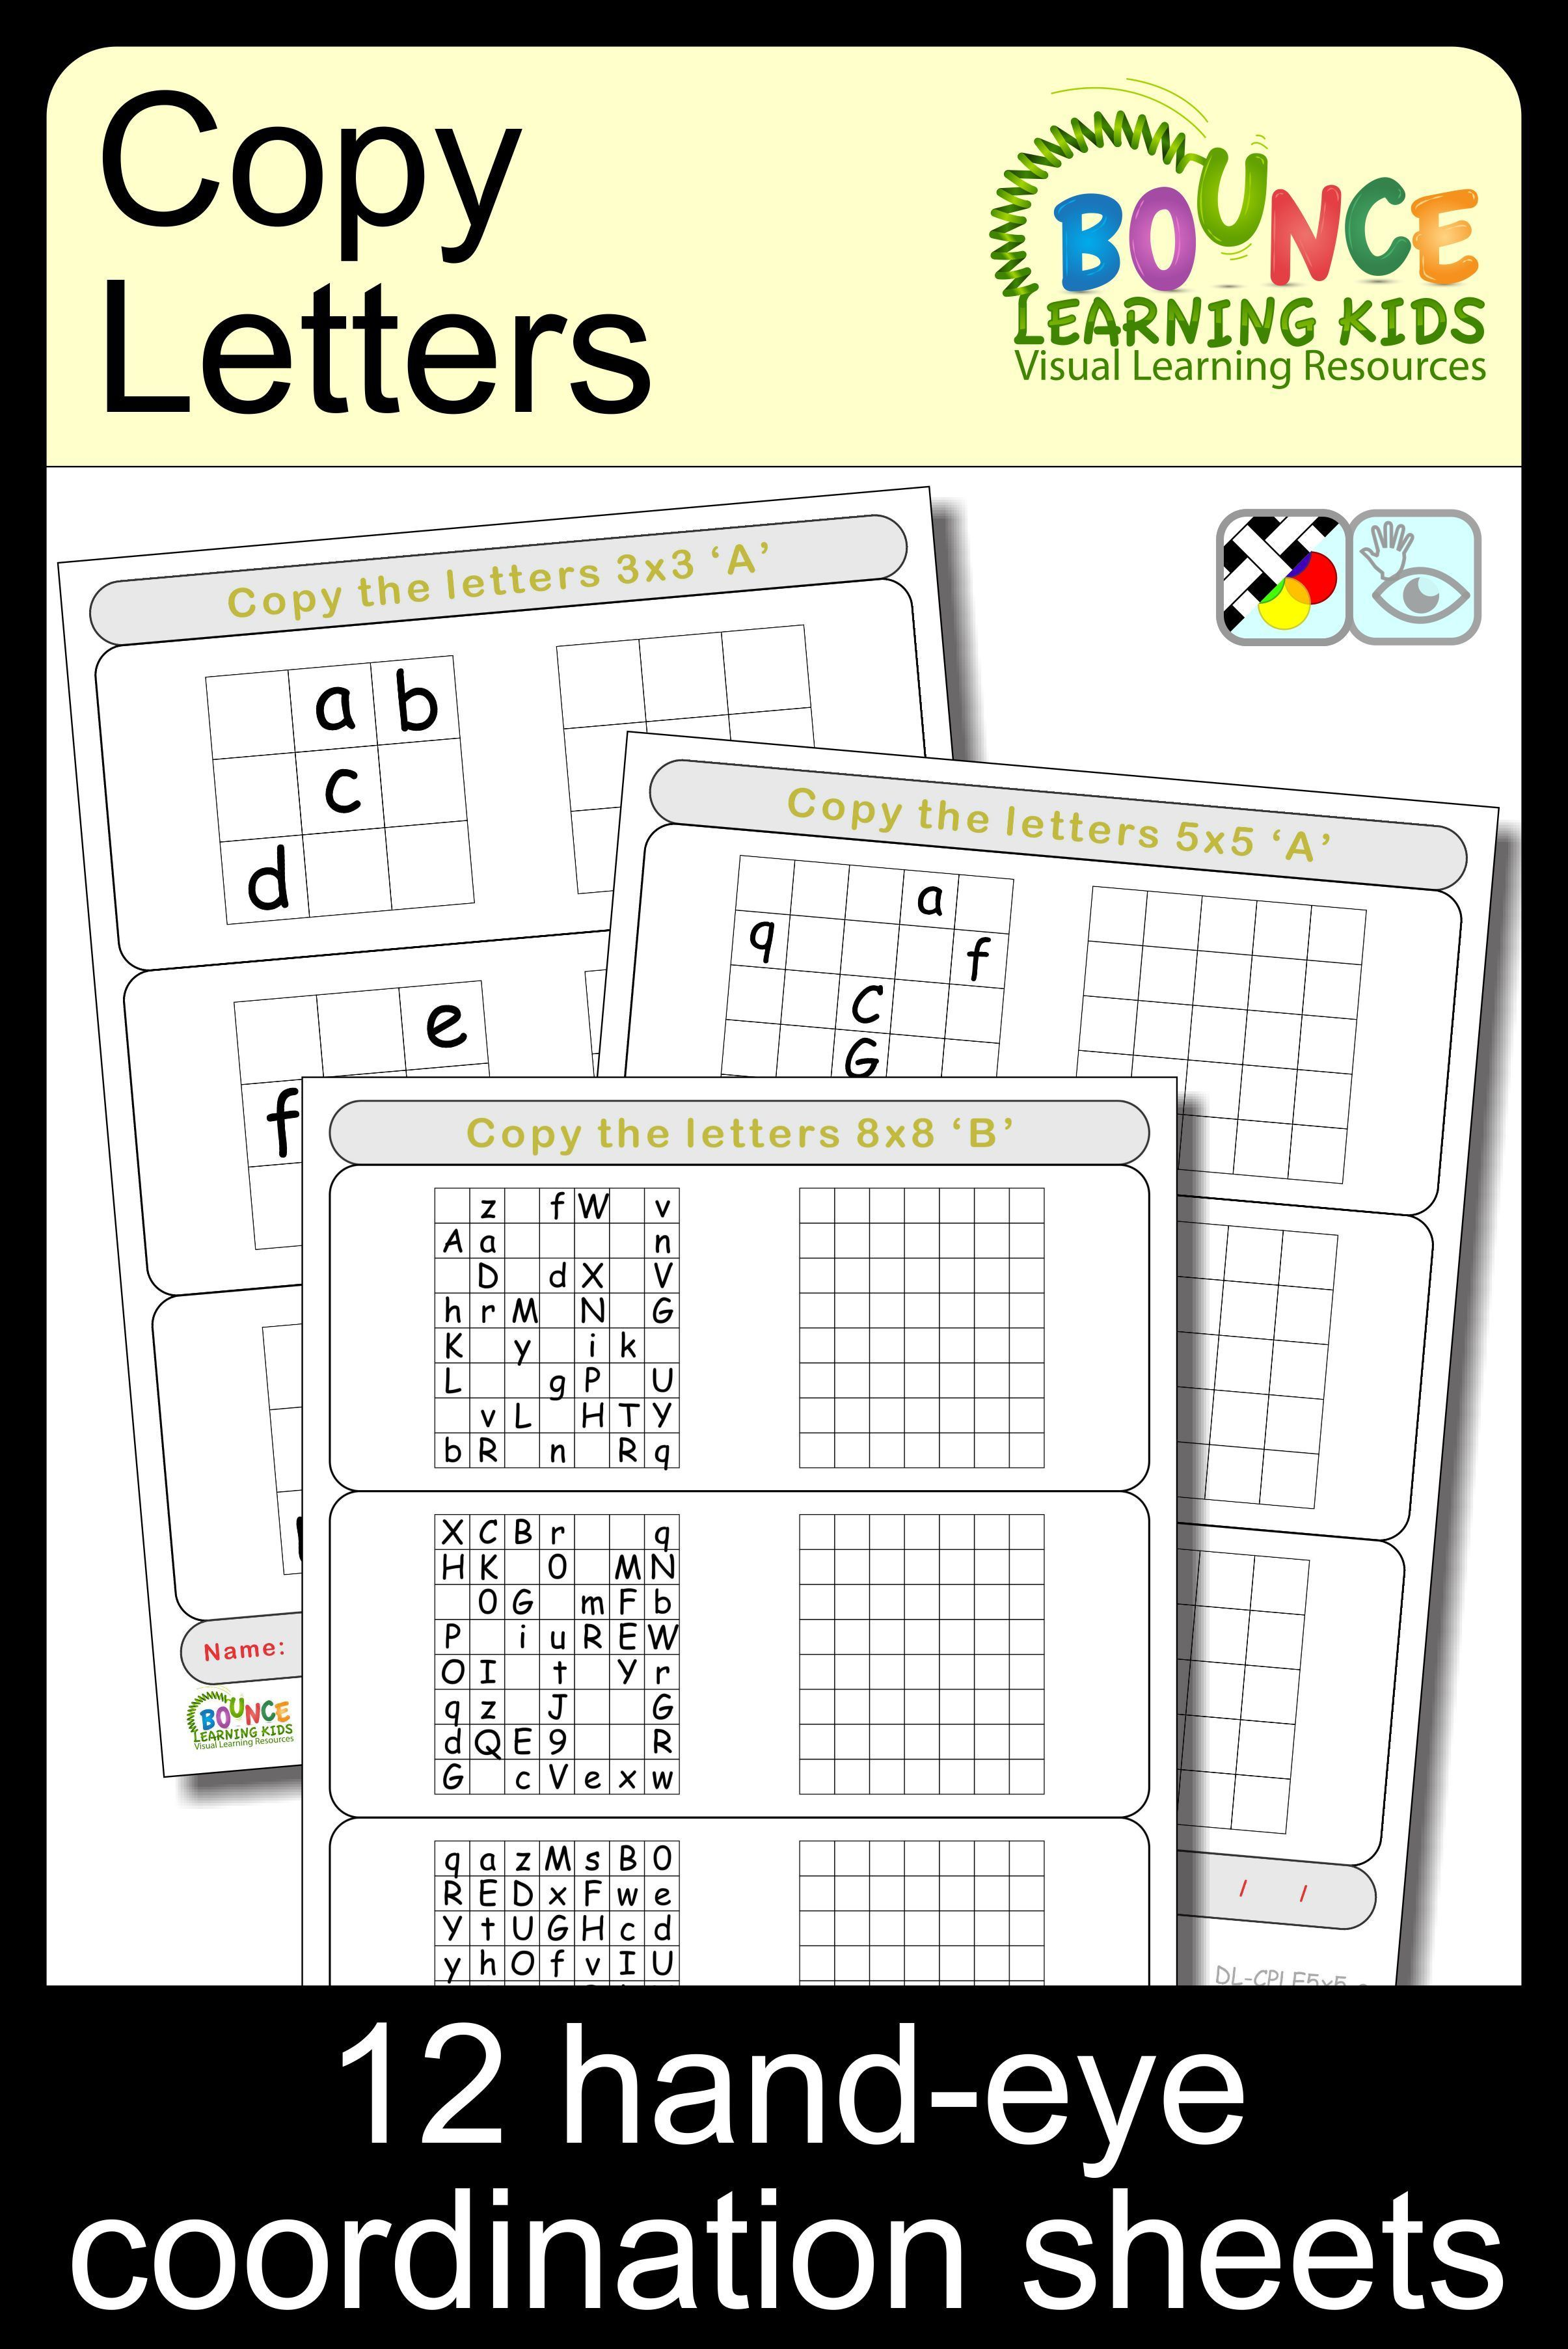 Copy Letters 12 Hand Eye Coordination Sheets Met